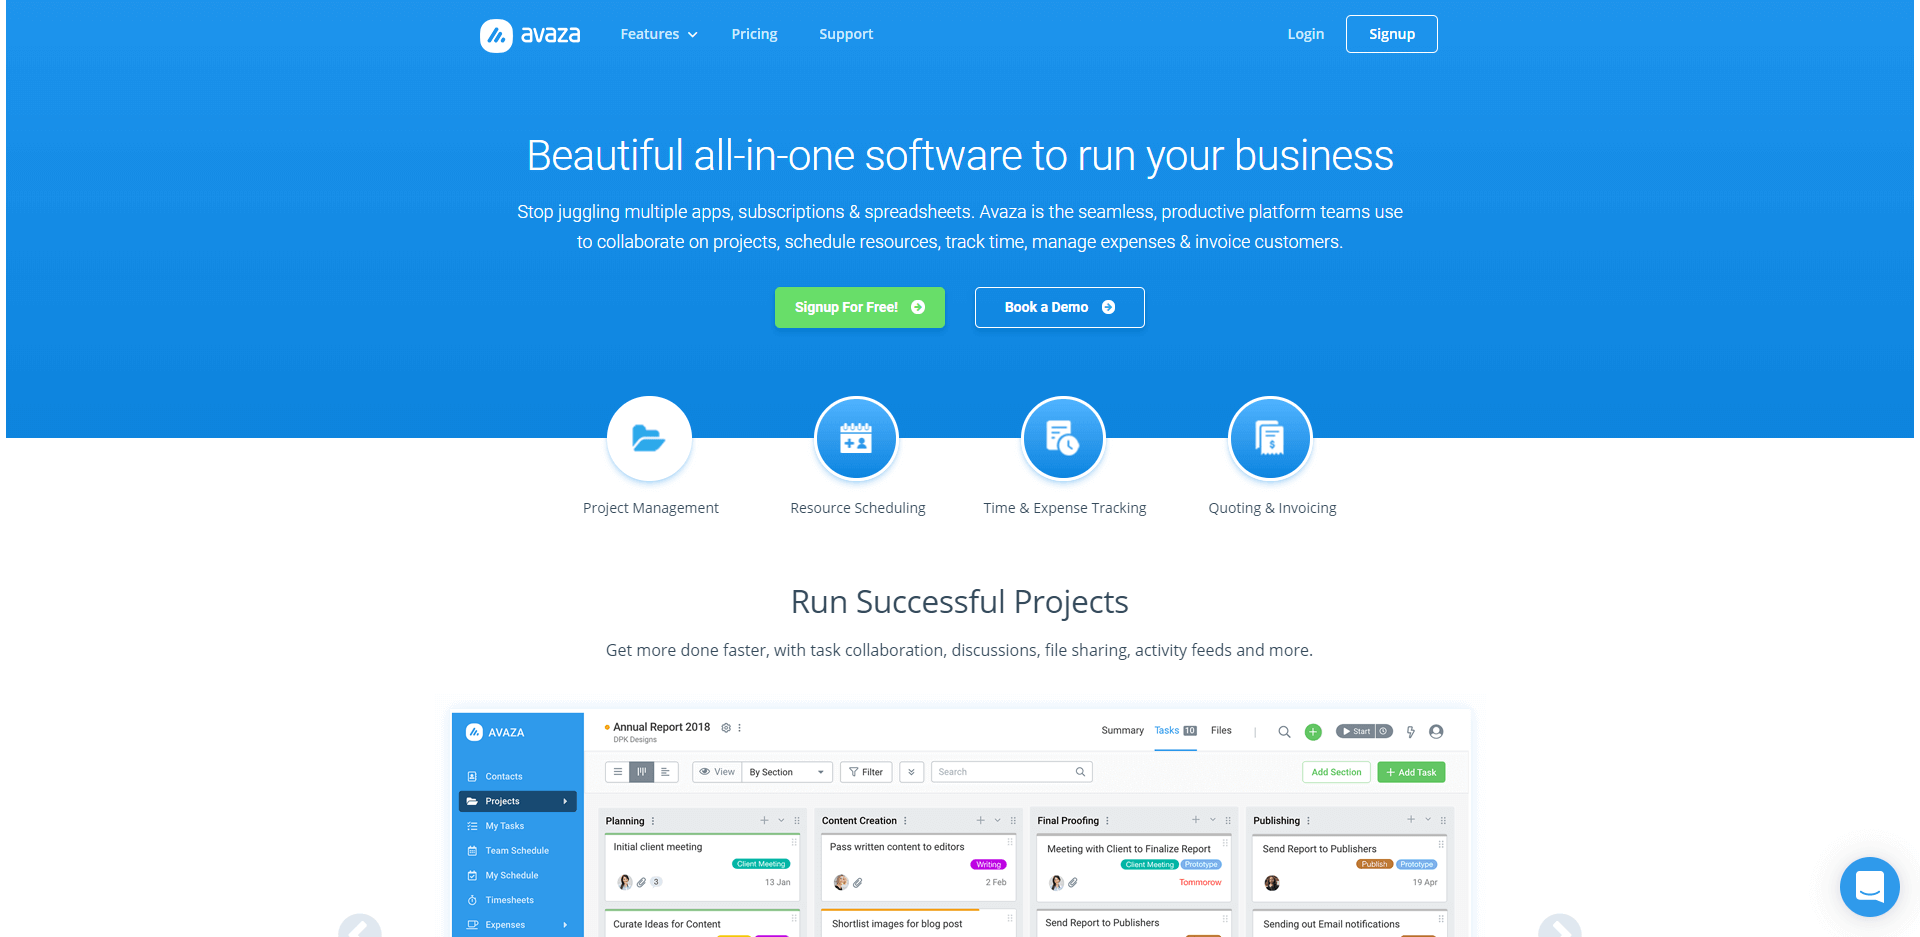 Avaza - Beautiful all-in-one software to run your business